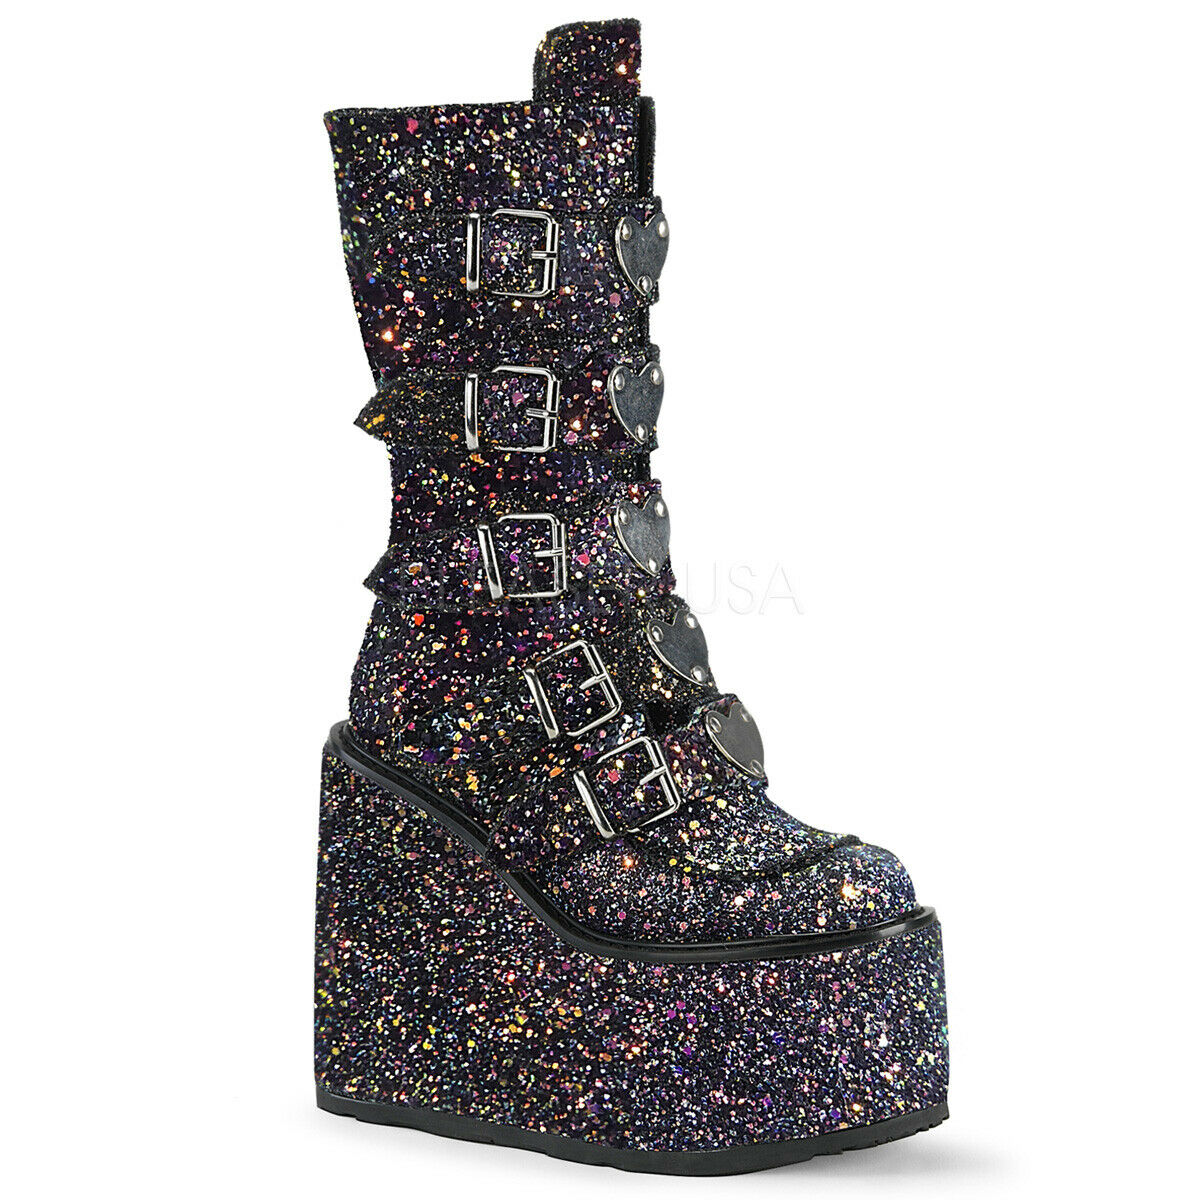 Demonia SWING-230G Women's Black Multi Glitter 5-Buckle Platform Mid-Calf Boots